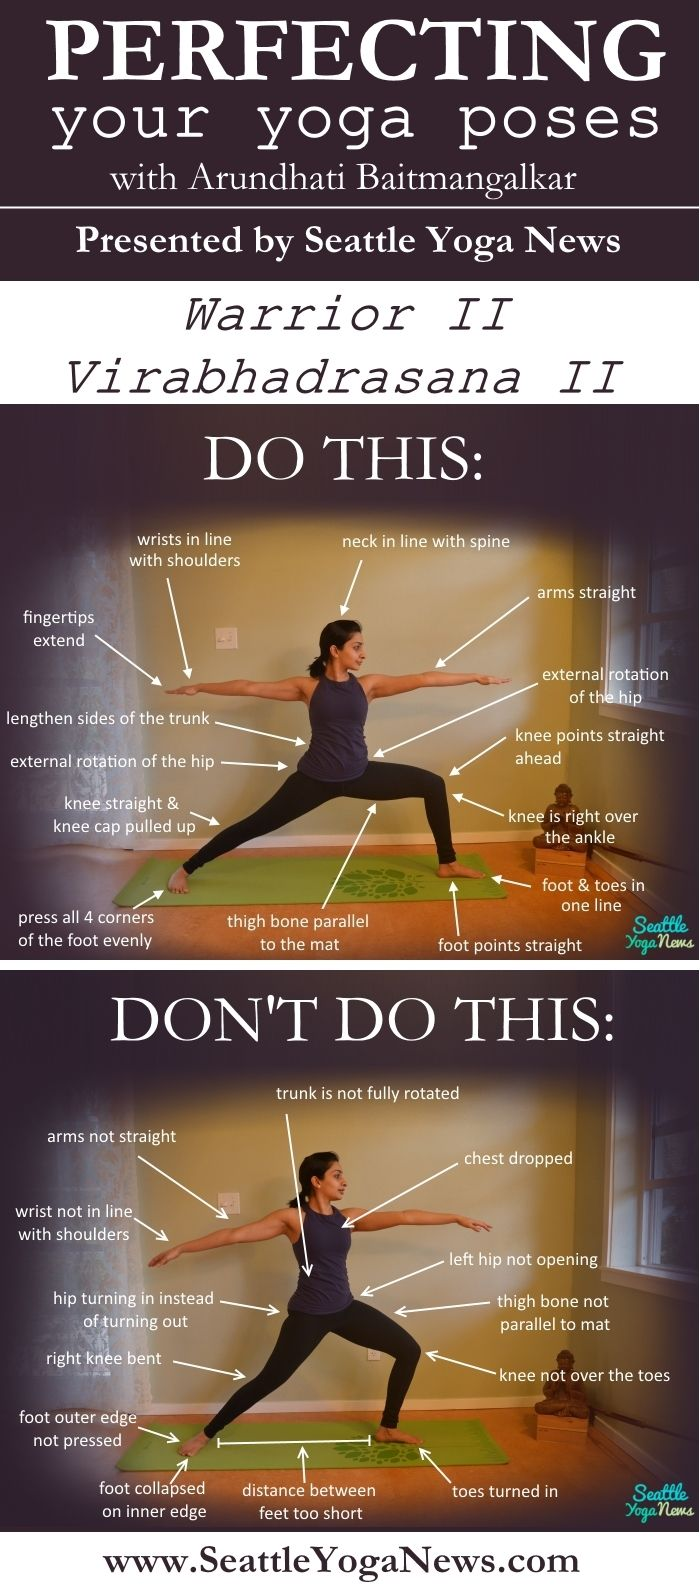 Pin it! A visual guide on what to do and what not to do when doing Warrior 2: http://seattleyoganews.com/perfecting-your-yoga-poses-warrior-ii/    Tags: yoga, infographic, asanas, asana, yoga pose, yoga poses, Warrior II, Warrior 2